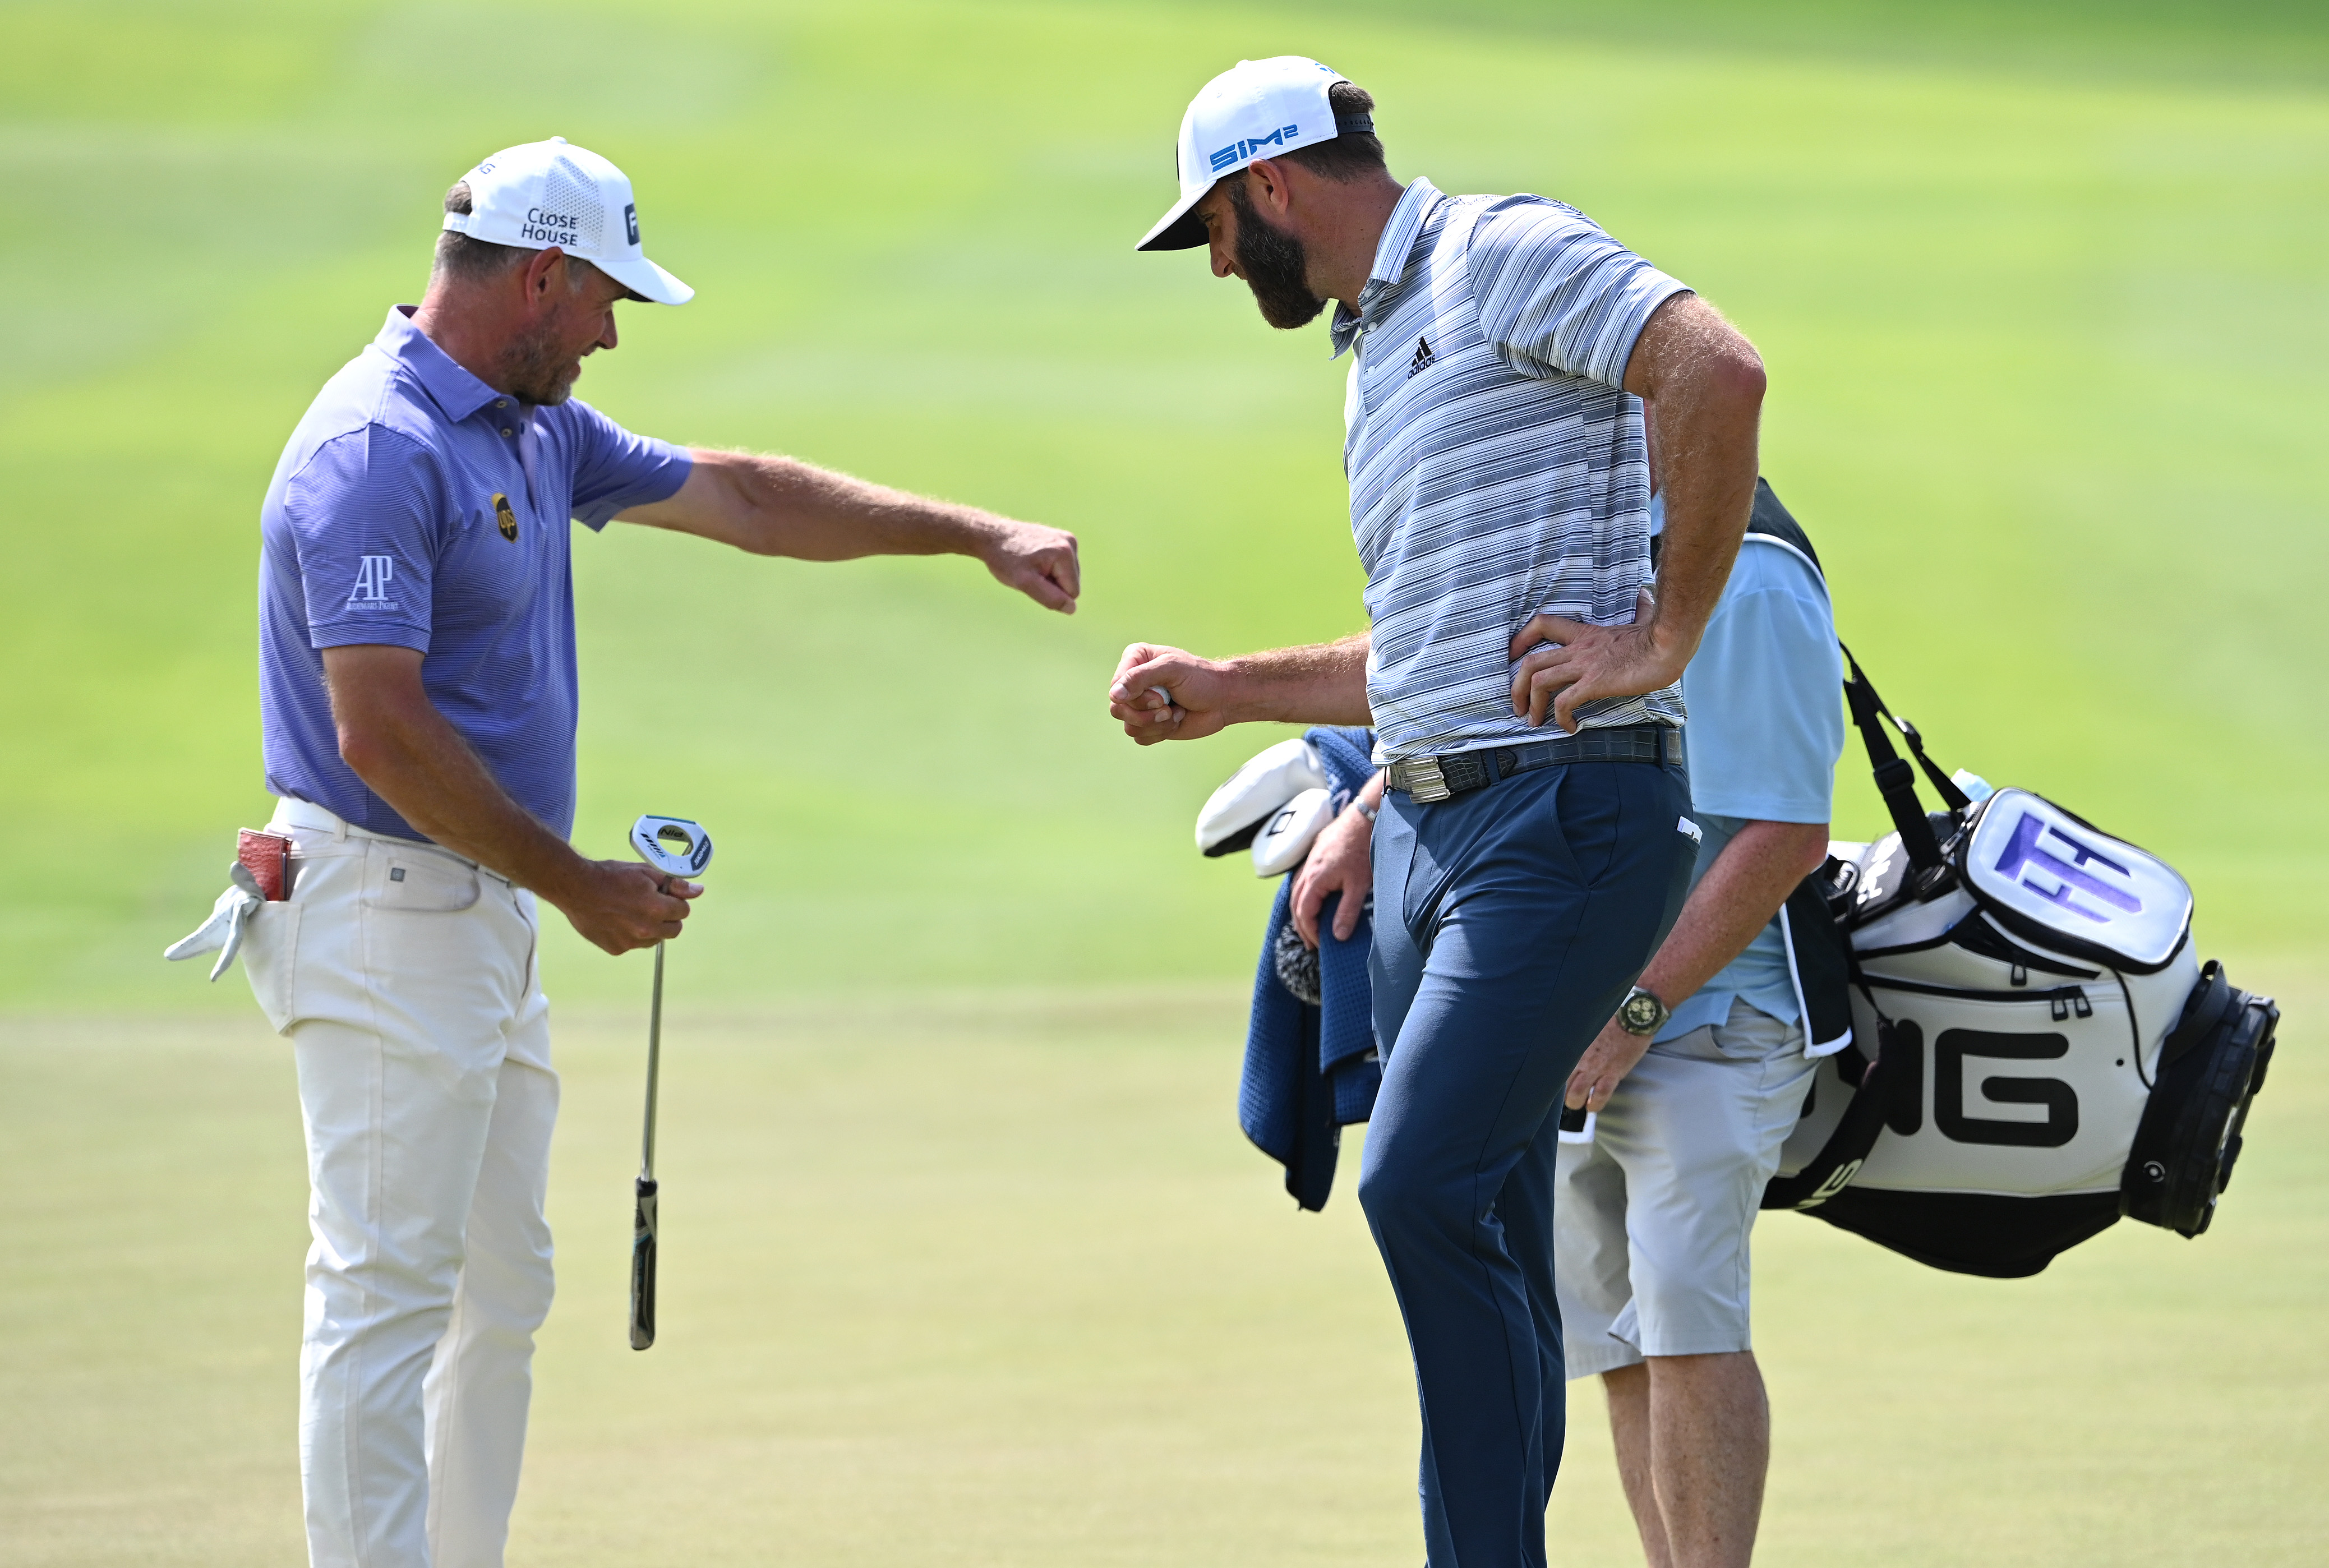 Lee Westwood of England (L) and Dustin Johnson of the USA (R) fist pump on the 9th green during Day One of the Saudi International powered by SoftBank Investment Advisers at Royal Greens Golf and Country Club on February 04, 2021 in King Abdullah Economic City, Saudi Arabia.